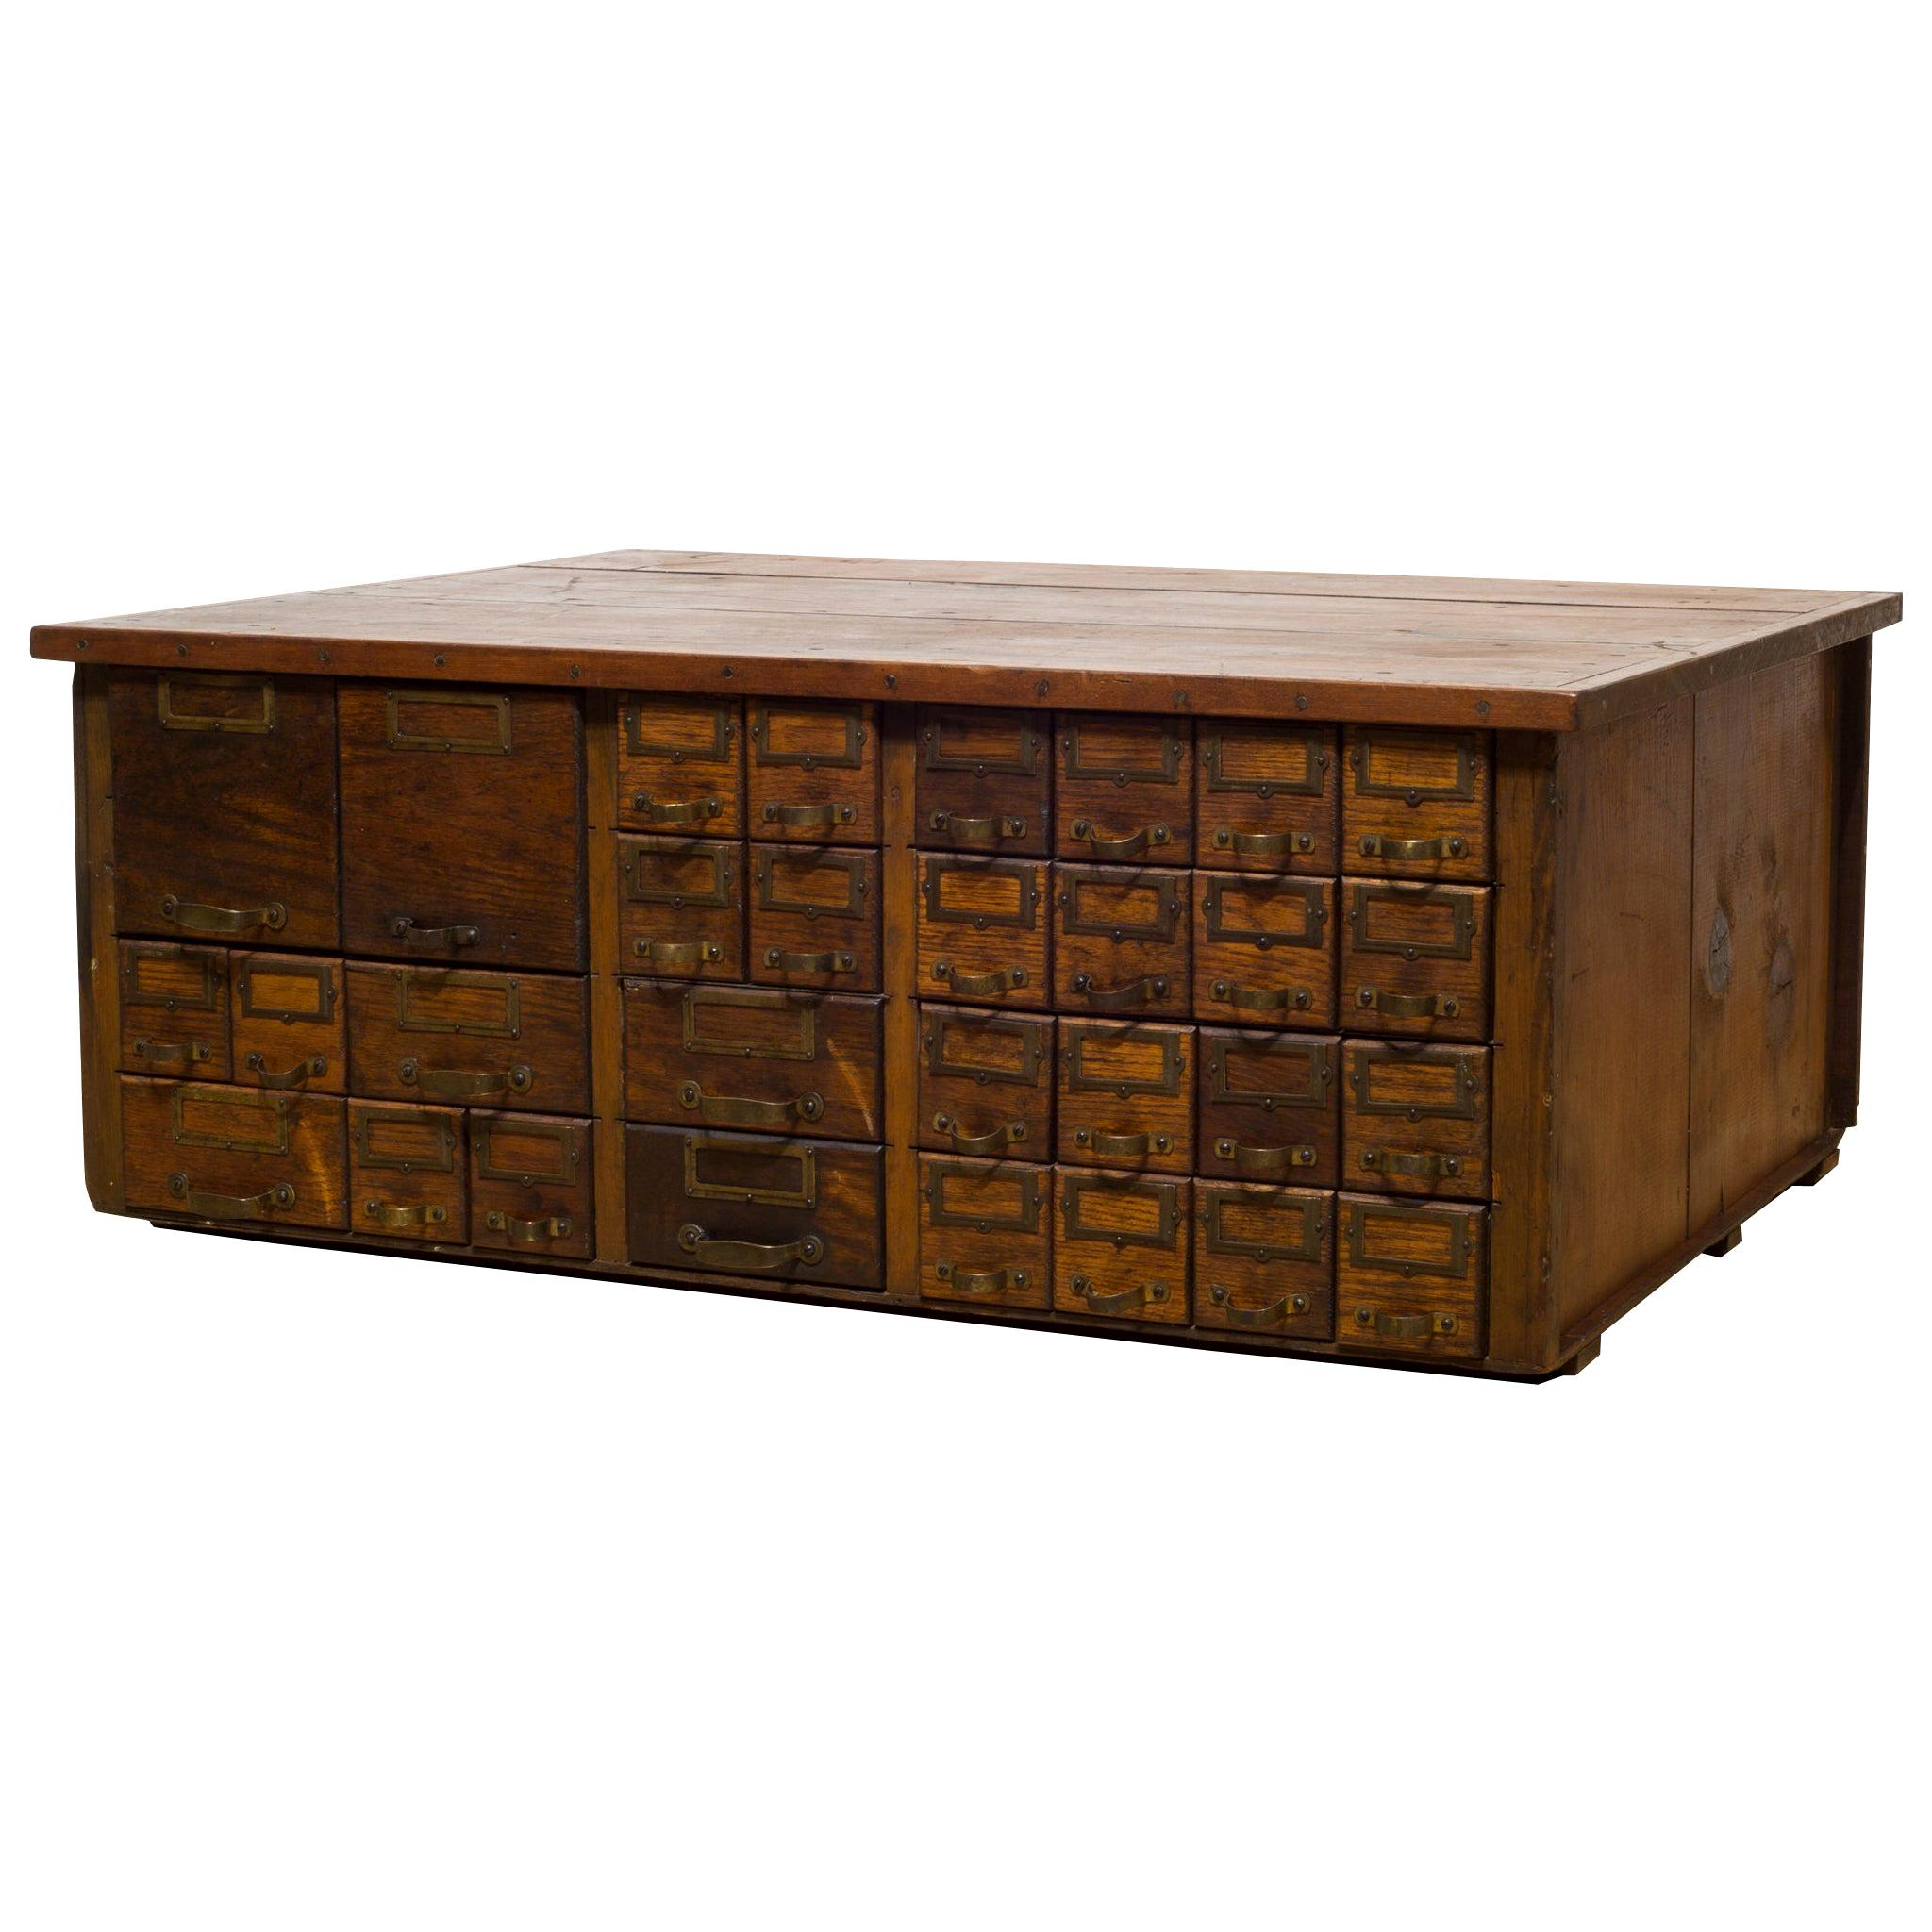 Antique And Vintage Apothecary Cabinets   275 For Sale At ...